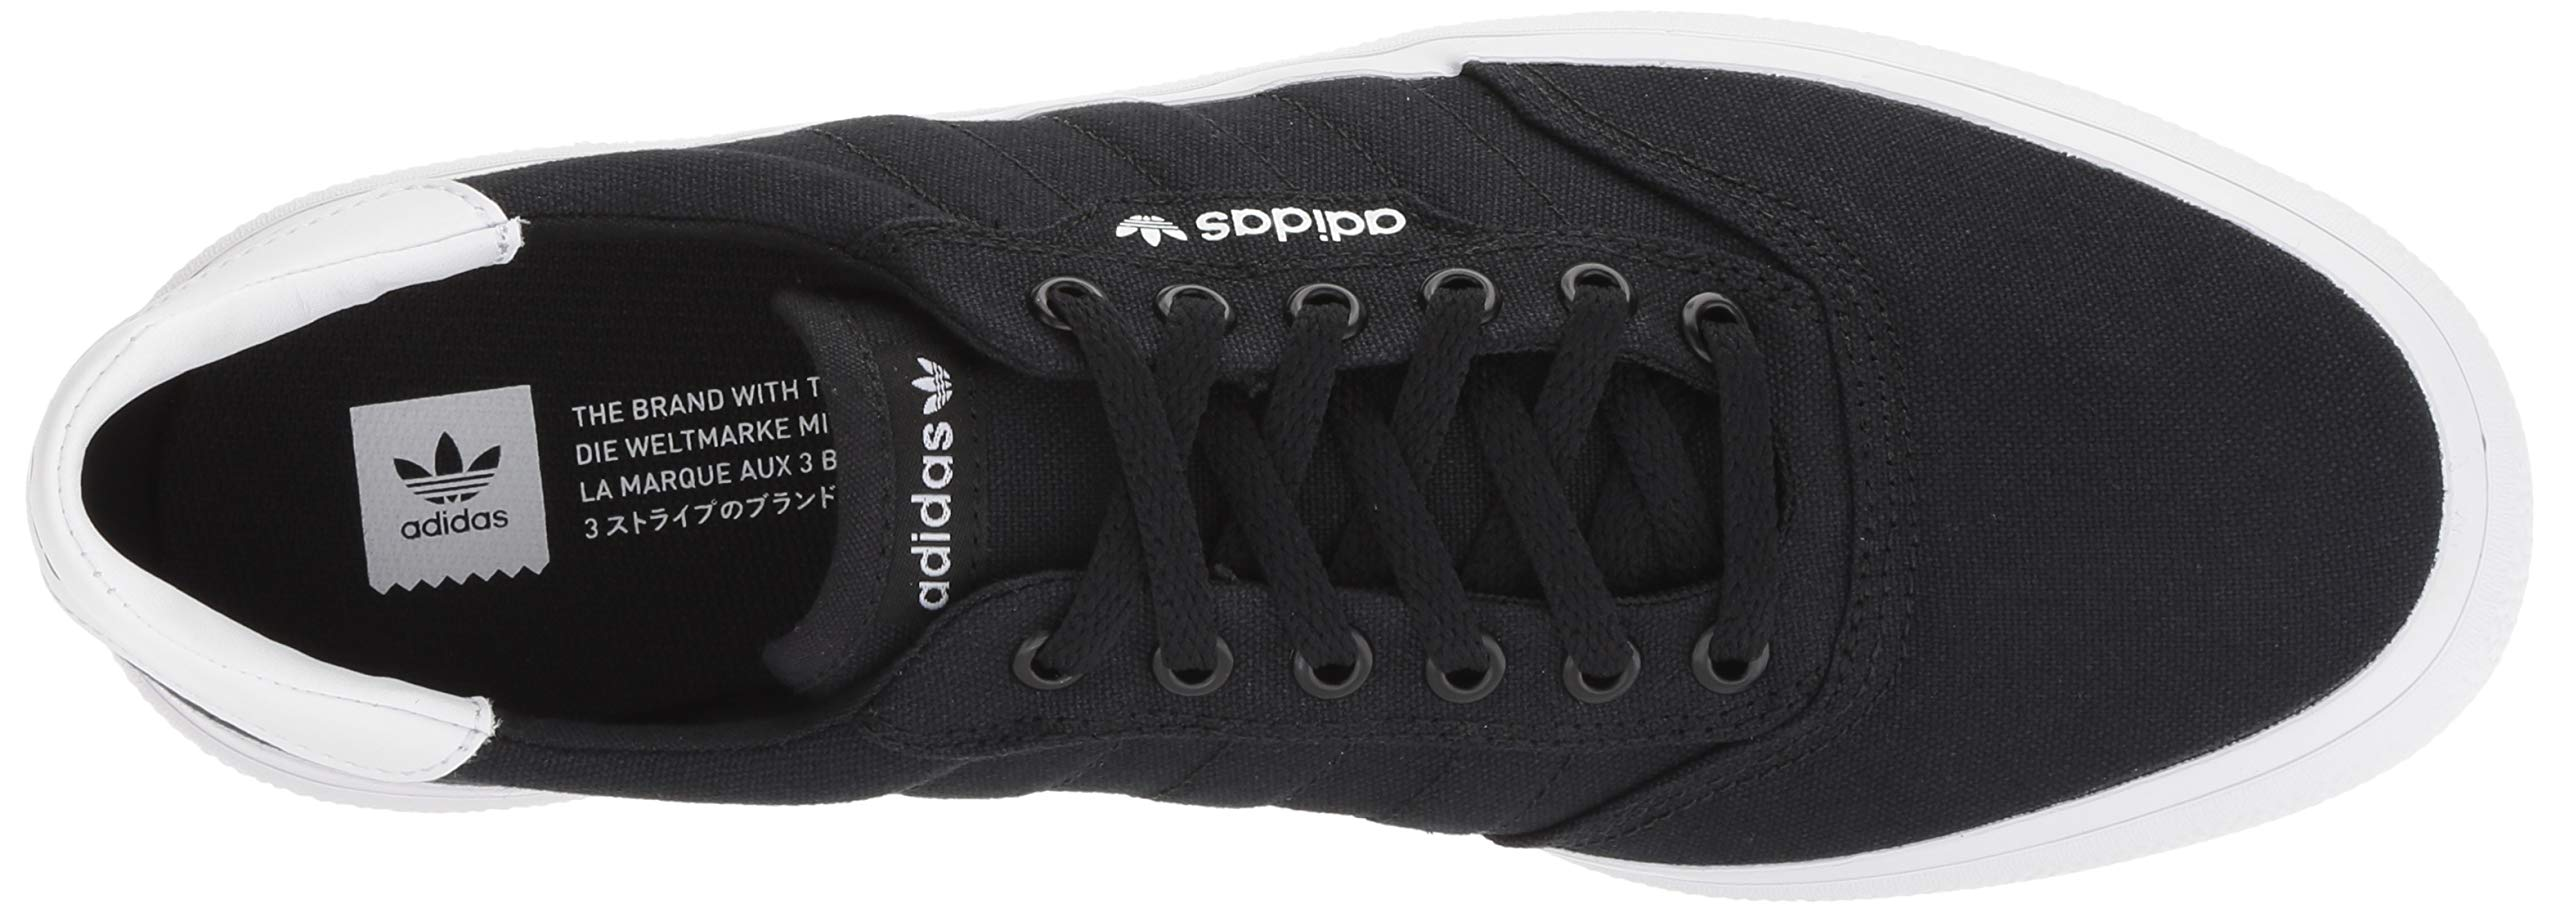 adidas Originals unisex-adult Black/White, 3 MC Skate Shoe 6.5 M US by adidas Originals (Image #8)